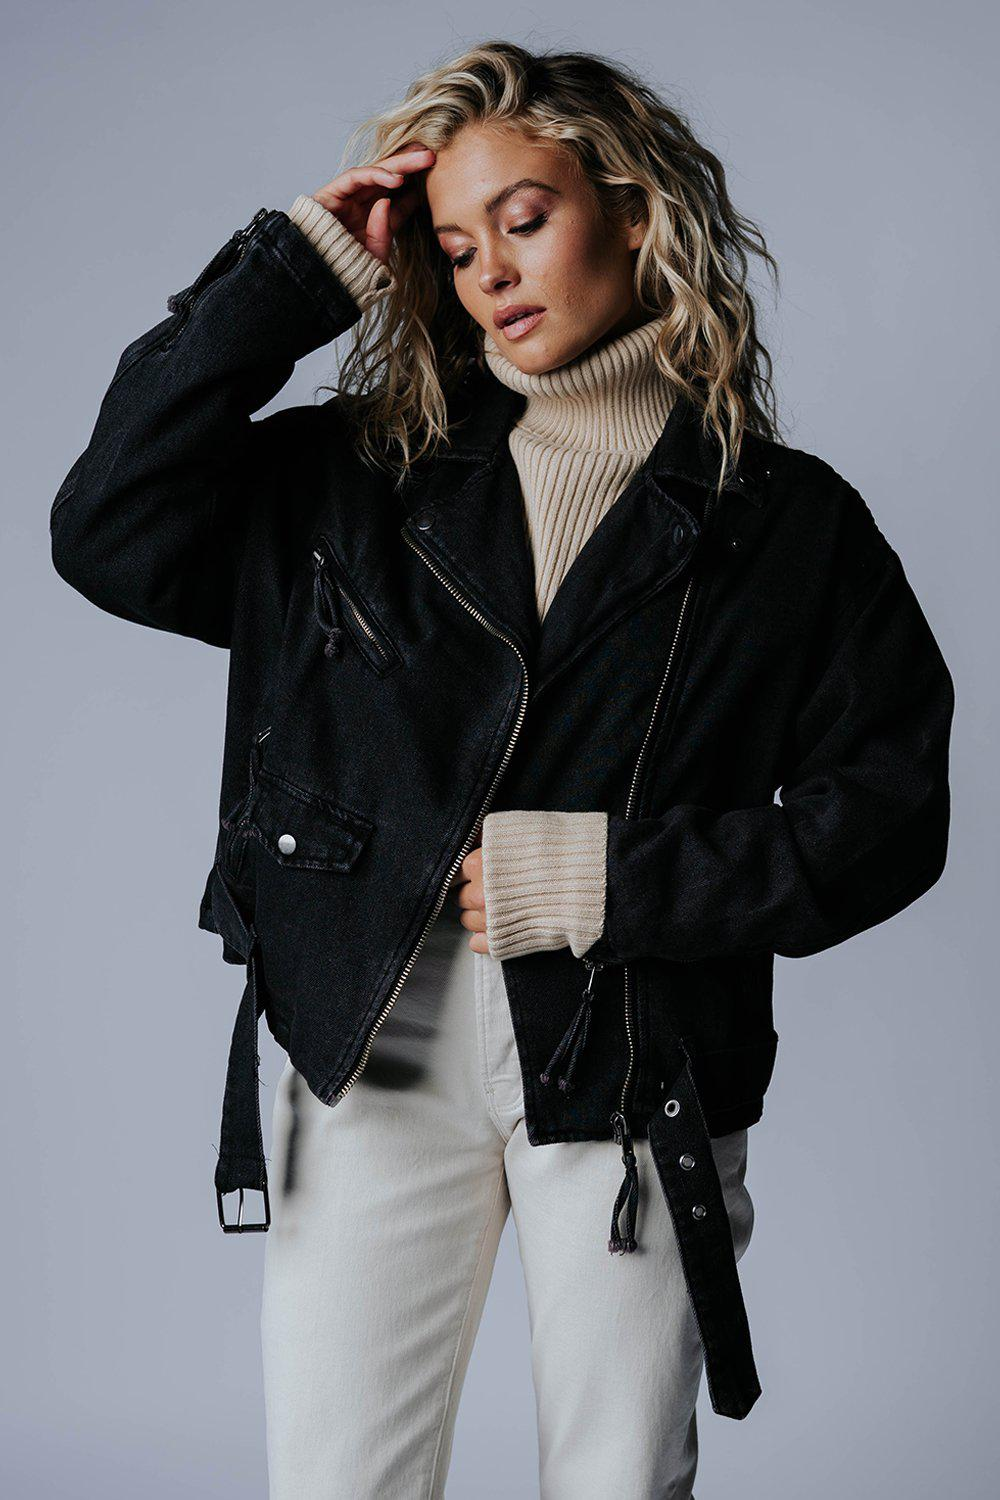 best_seller, Try Me Oversized Moto Jacket, Top, women's clothing, dresses, skirts, coats, jackets, shoes, boots, tops, tee shirts, jeans, free people, levi's, rollas, jumpsuits, bottoms, tops, sweaters, pullovers, pants, shorts, sweats,.